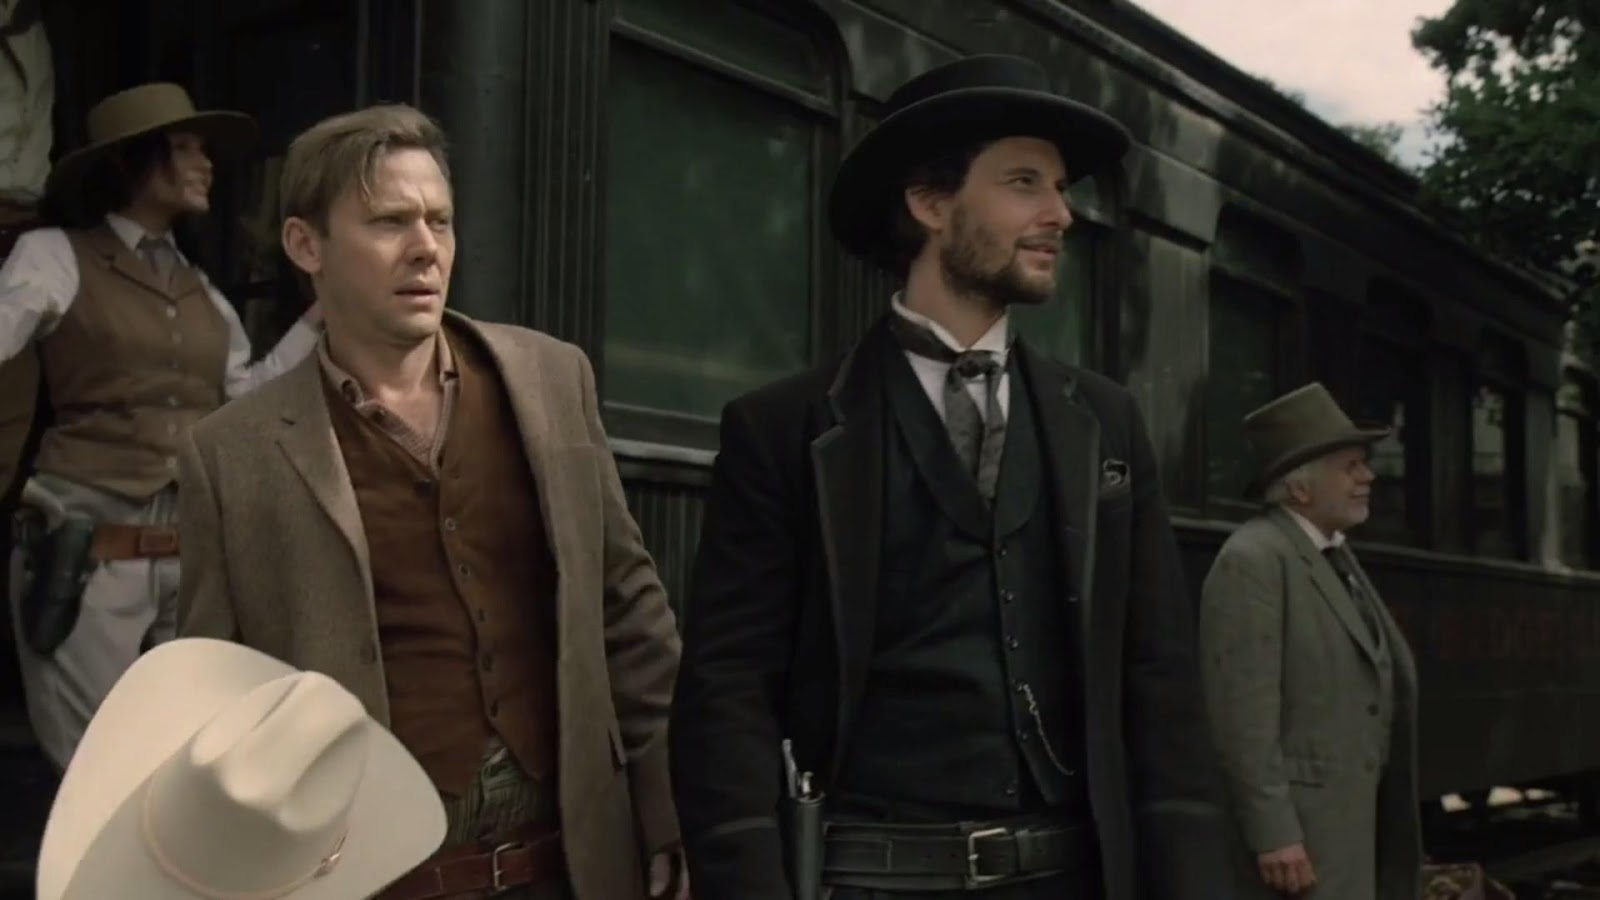 William and Logan on Westworld